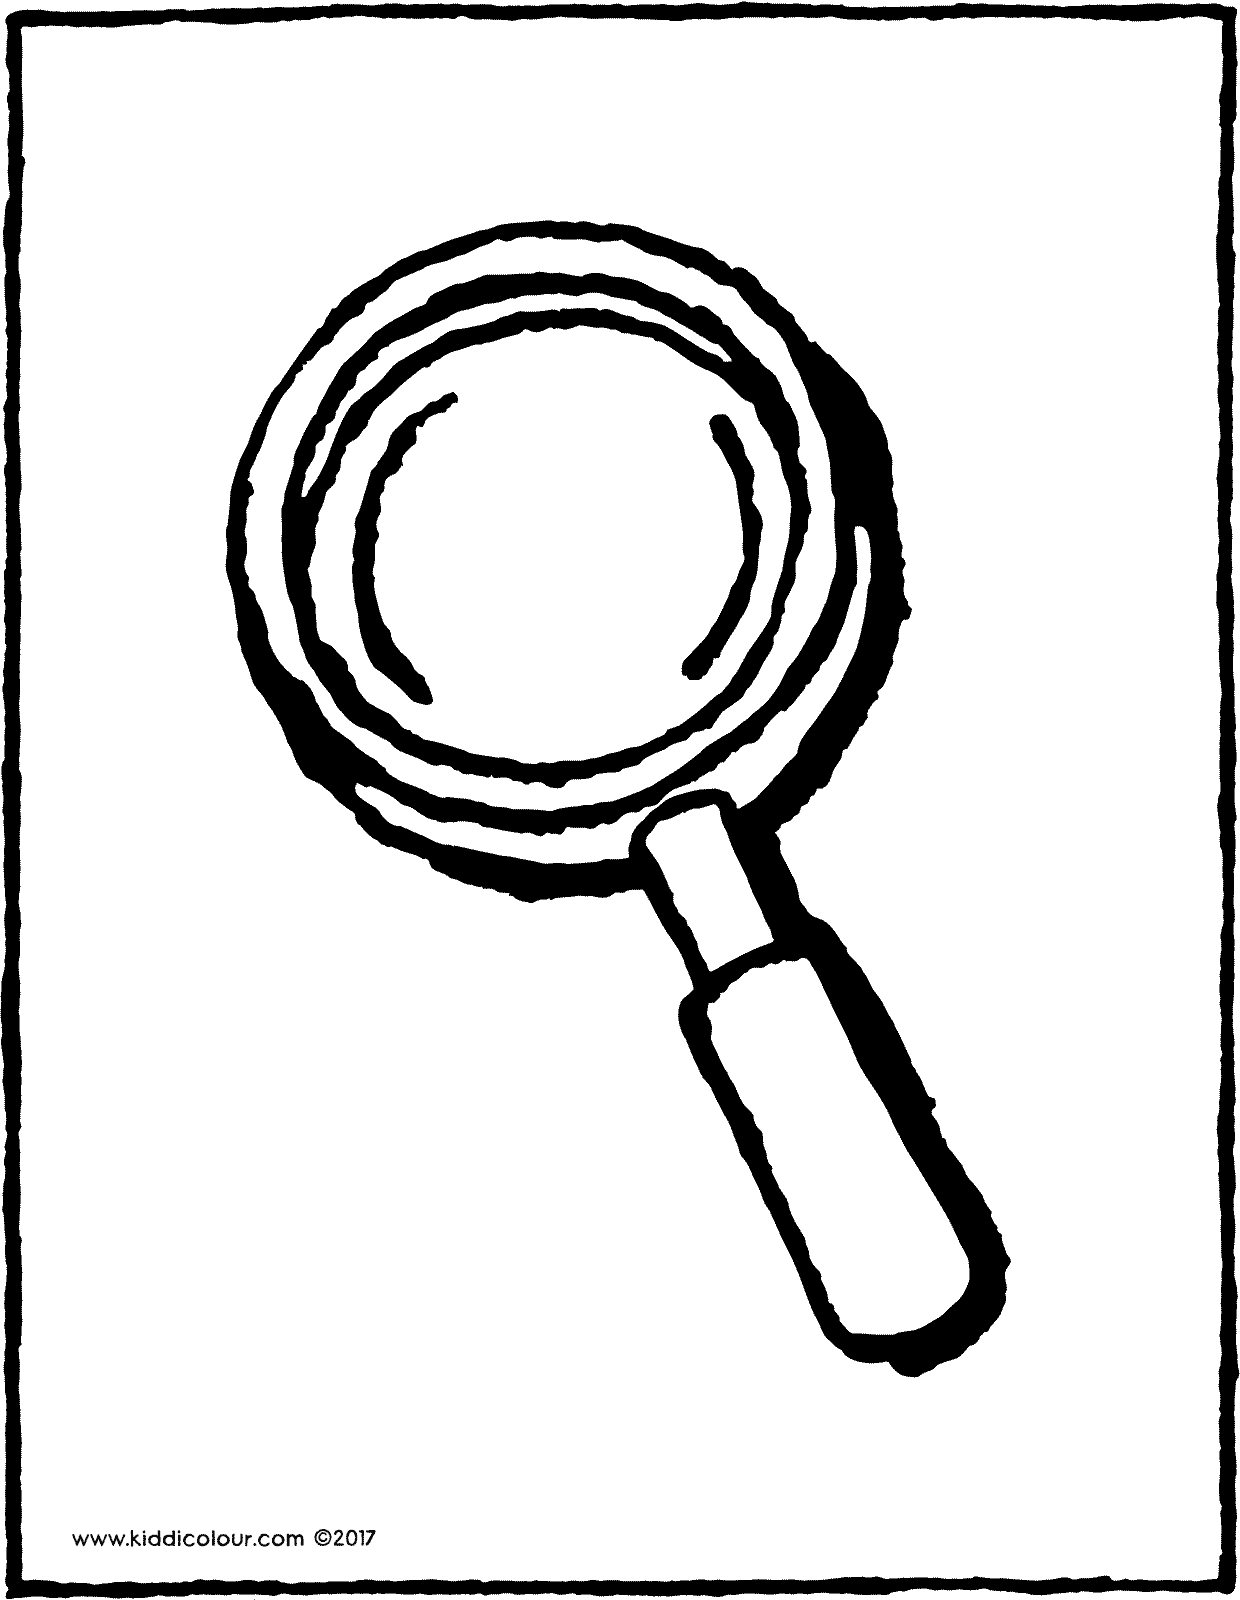 magnifying glass colouring page drawing picture 01V